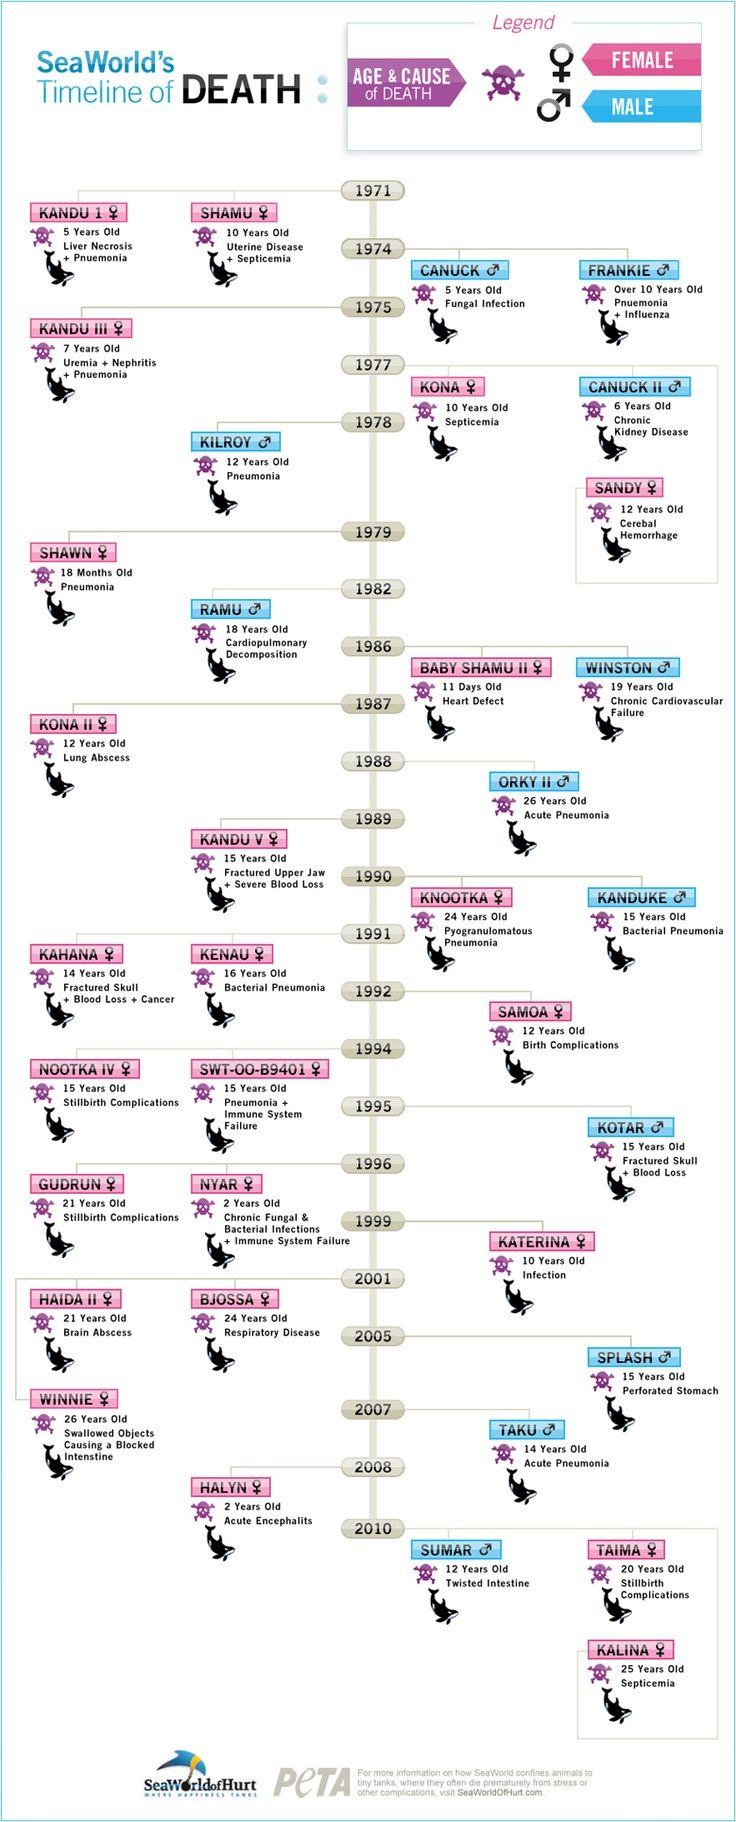 A timeline of Orca whale deaths at SeaWorld between the years of 1971 and 2010.